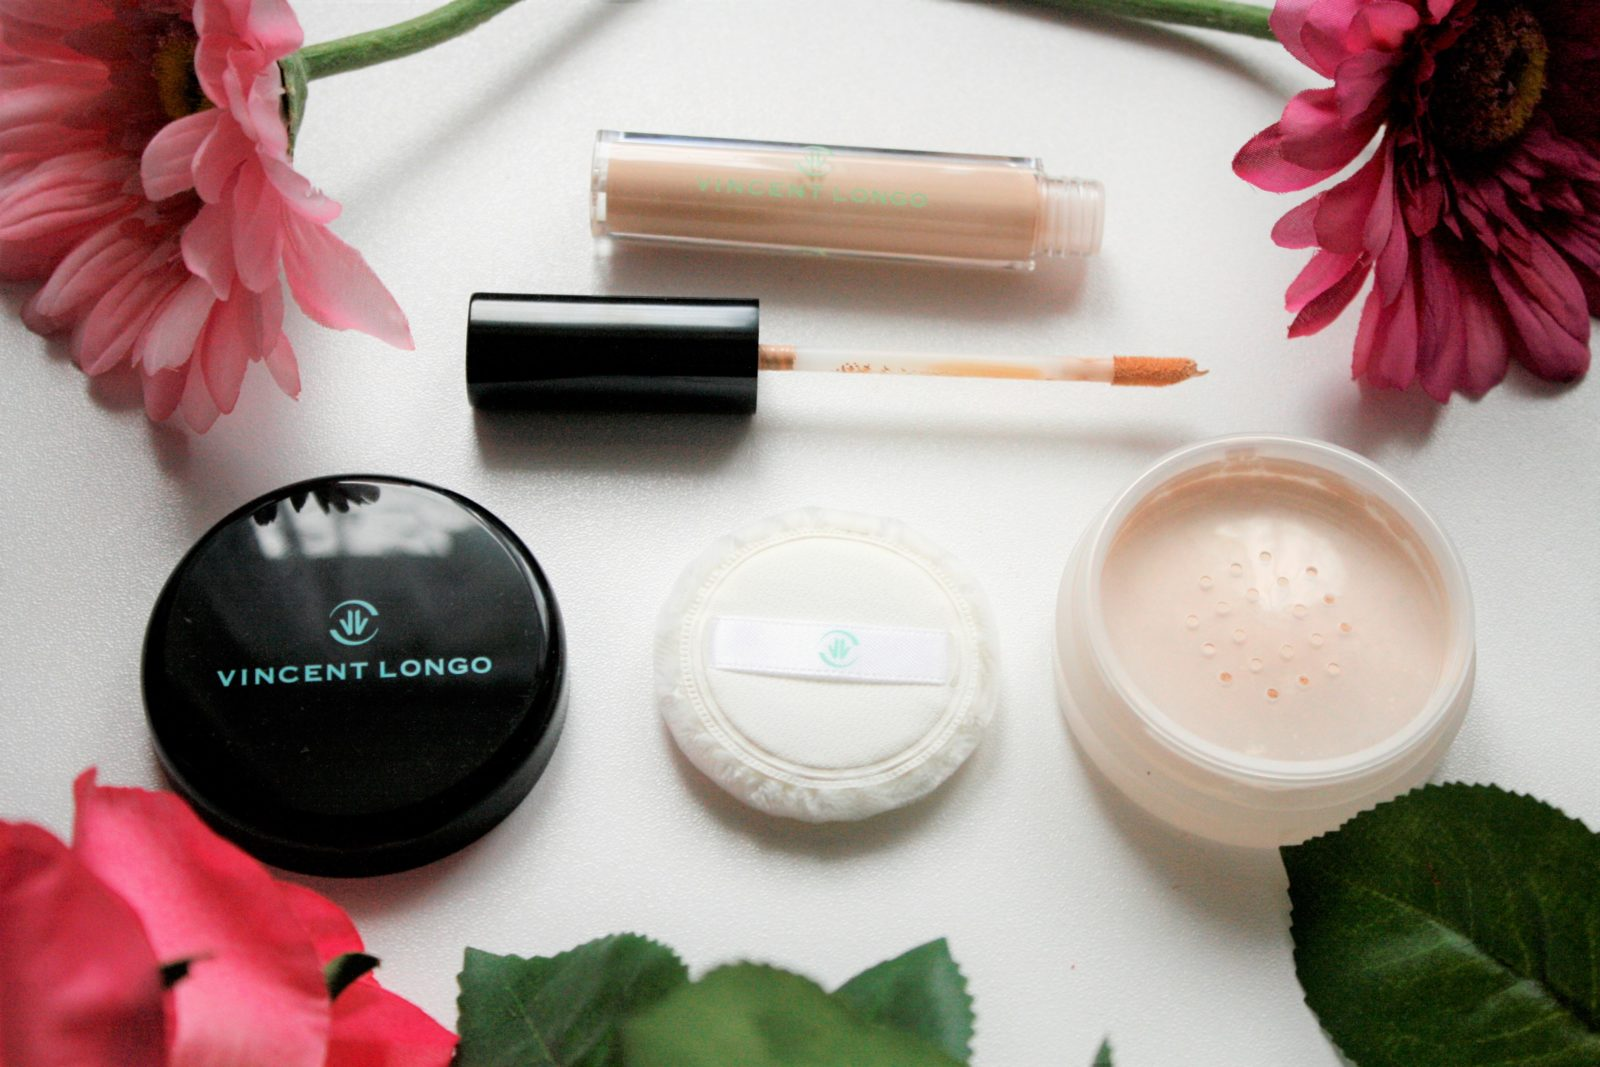 Vincent Longo Cosmetics Concealer and Pressed Powder Review